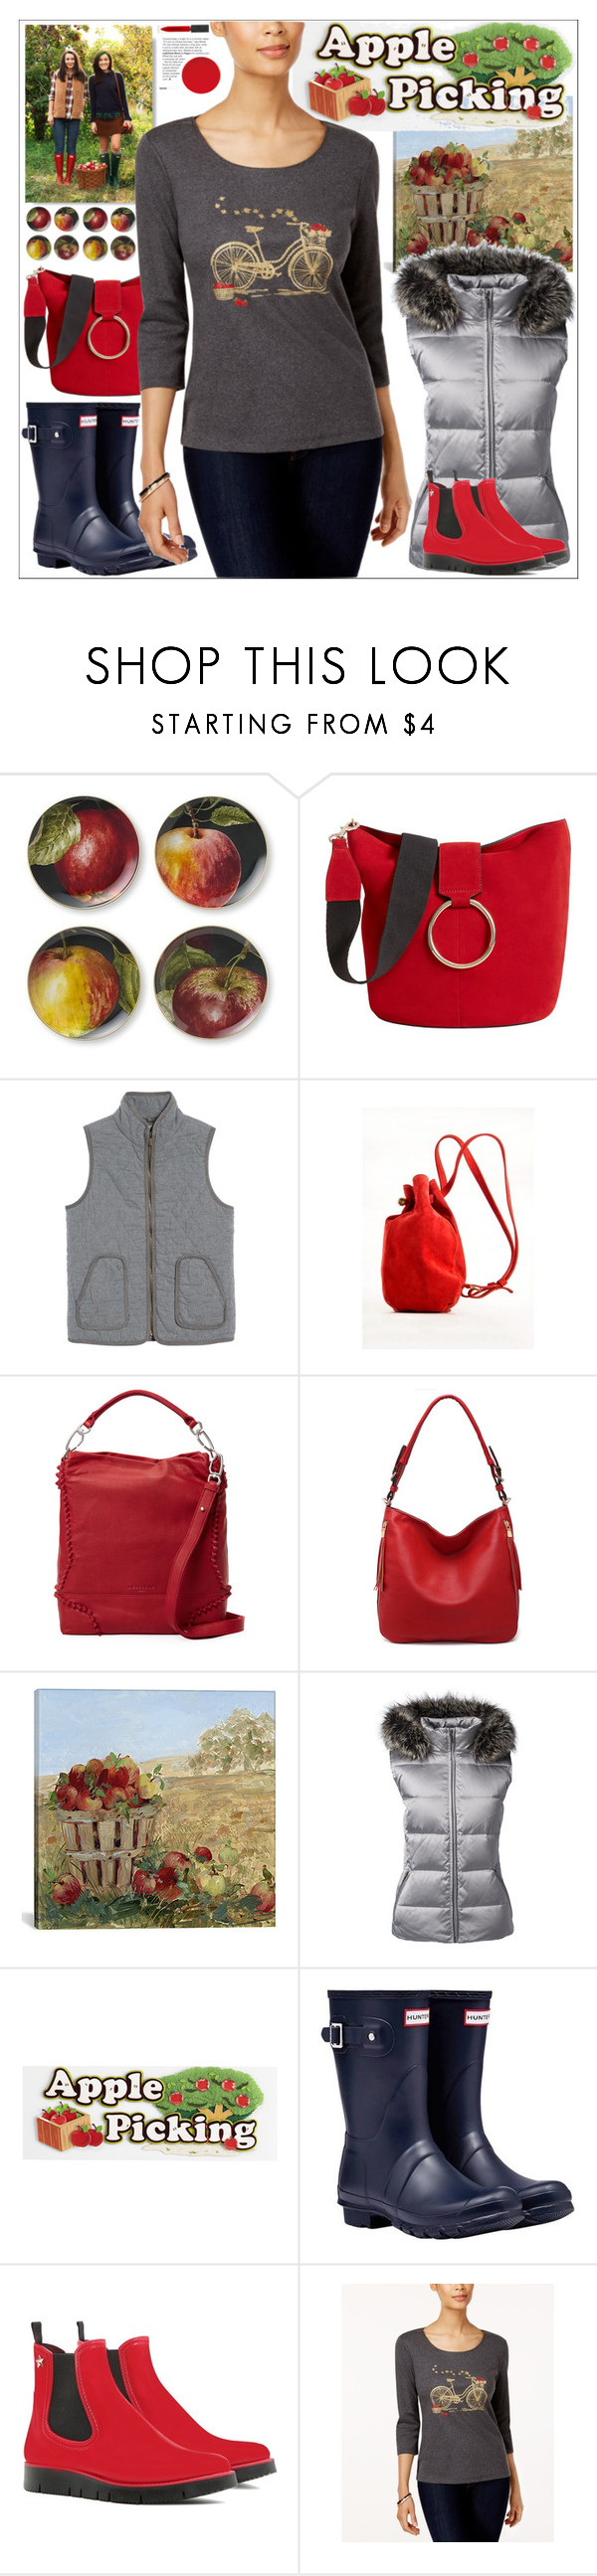 """""""Harvest Time: Apple Picking"""" by yours-styling-best-friend ❤ liked on Polyvore featuring Williams-Sonoma, Caslon, Meraki, Liebeskind, MKF Collection, iCanvas, Lands' End, Hunter, RED Valentino and Karen Scott"""